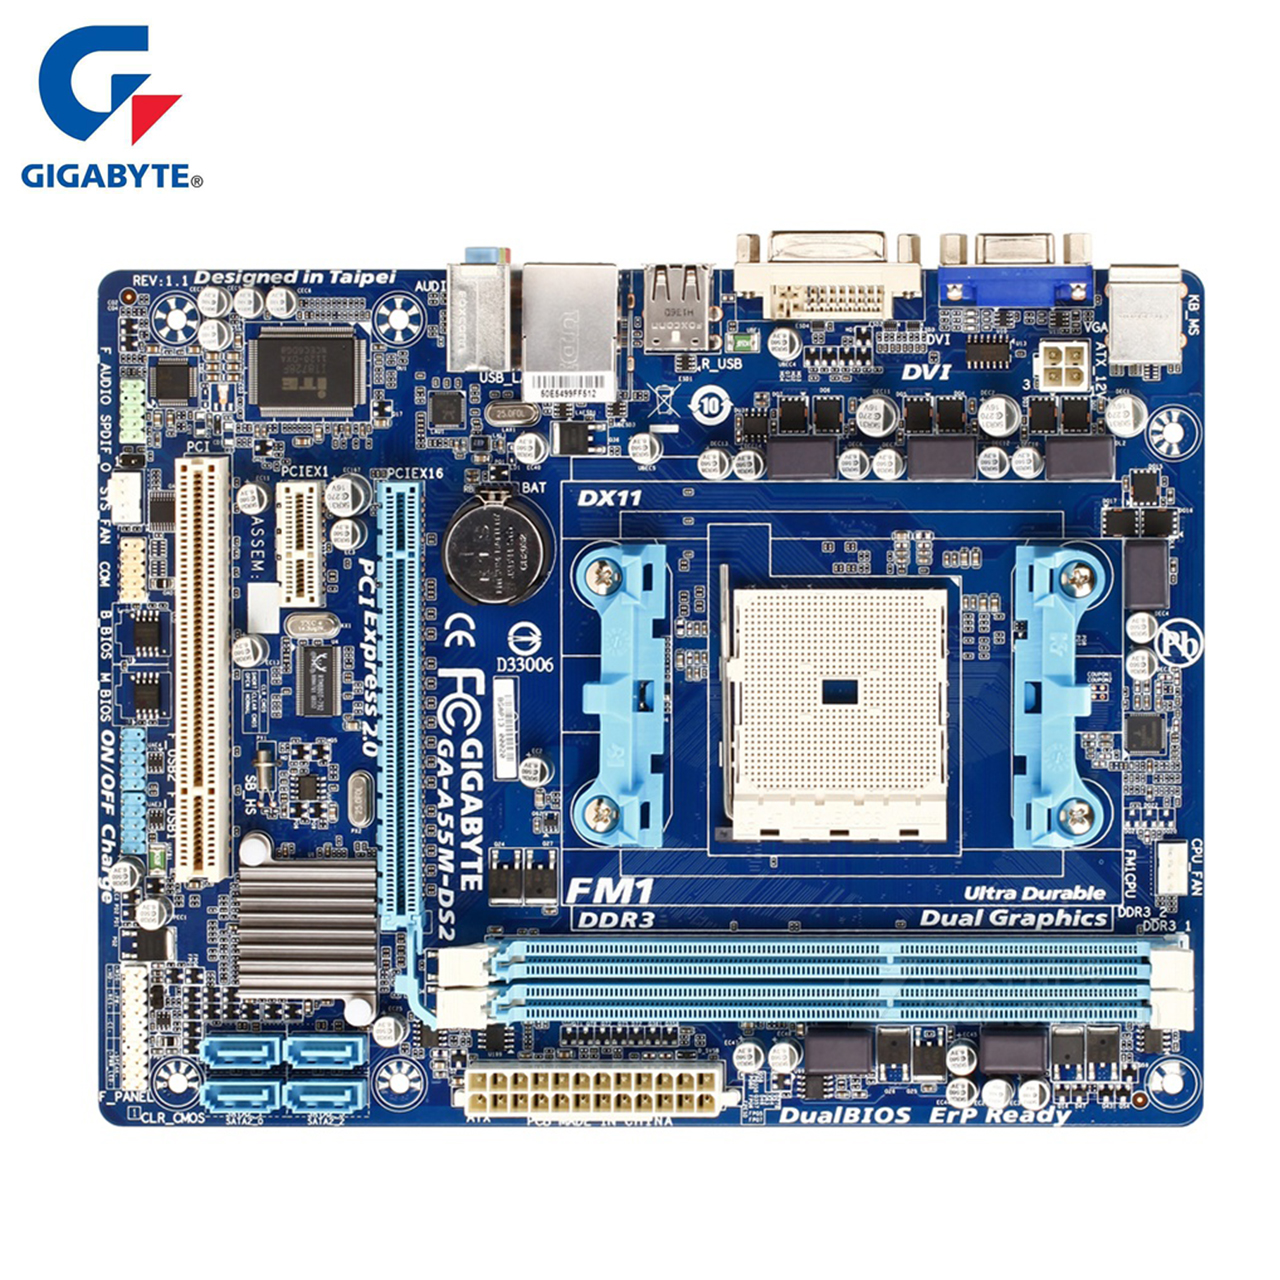 Gigabyte Motherboard GA-A55M-DS2 100% Original DDR3 Desktop Mainboard Boards A55M-DS2 Socket FM1 A55 32GB Systemboard Boards msi original zh77a g43 motherboard ddr3 lga 1155 for i3 i5 i7 cpu 32gb usb3 0 sata3 h77 motherboard